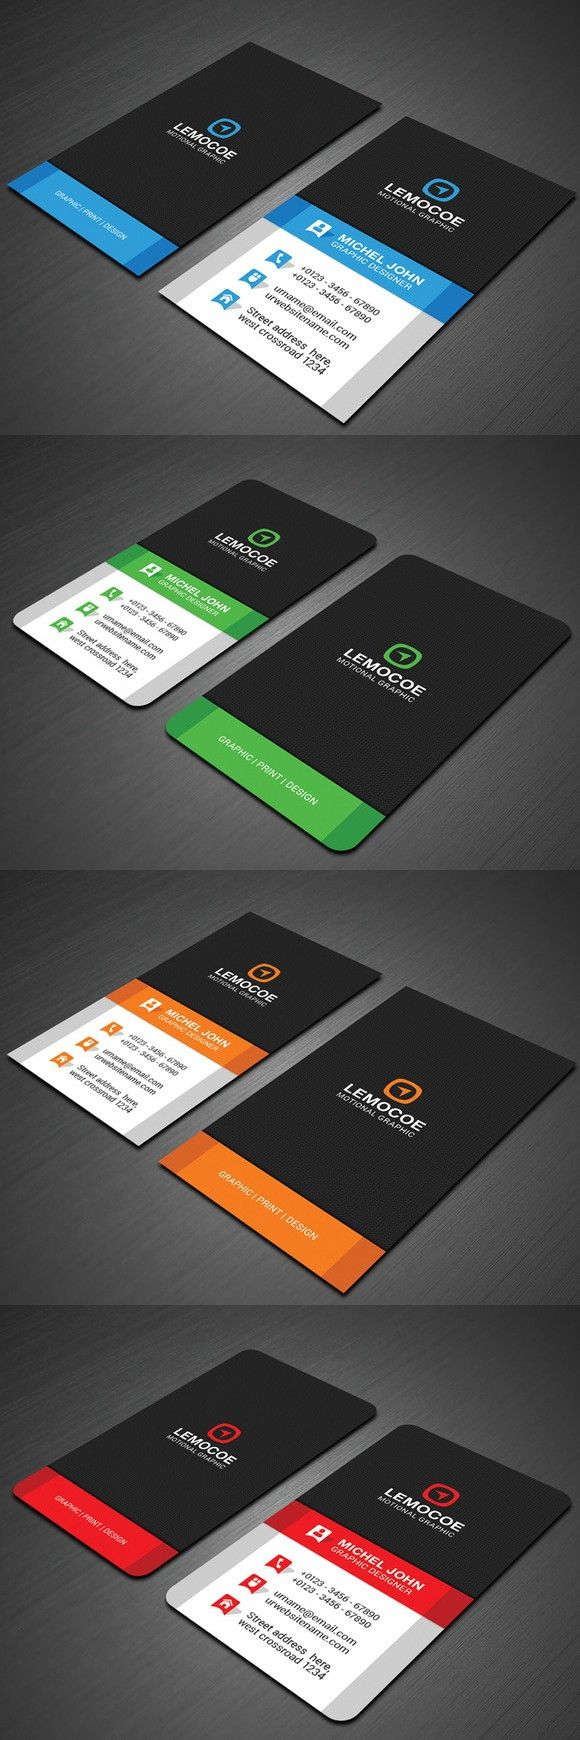 Vertical business card template etamemibawa vertical business card template fbccfo Images